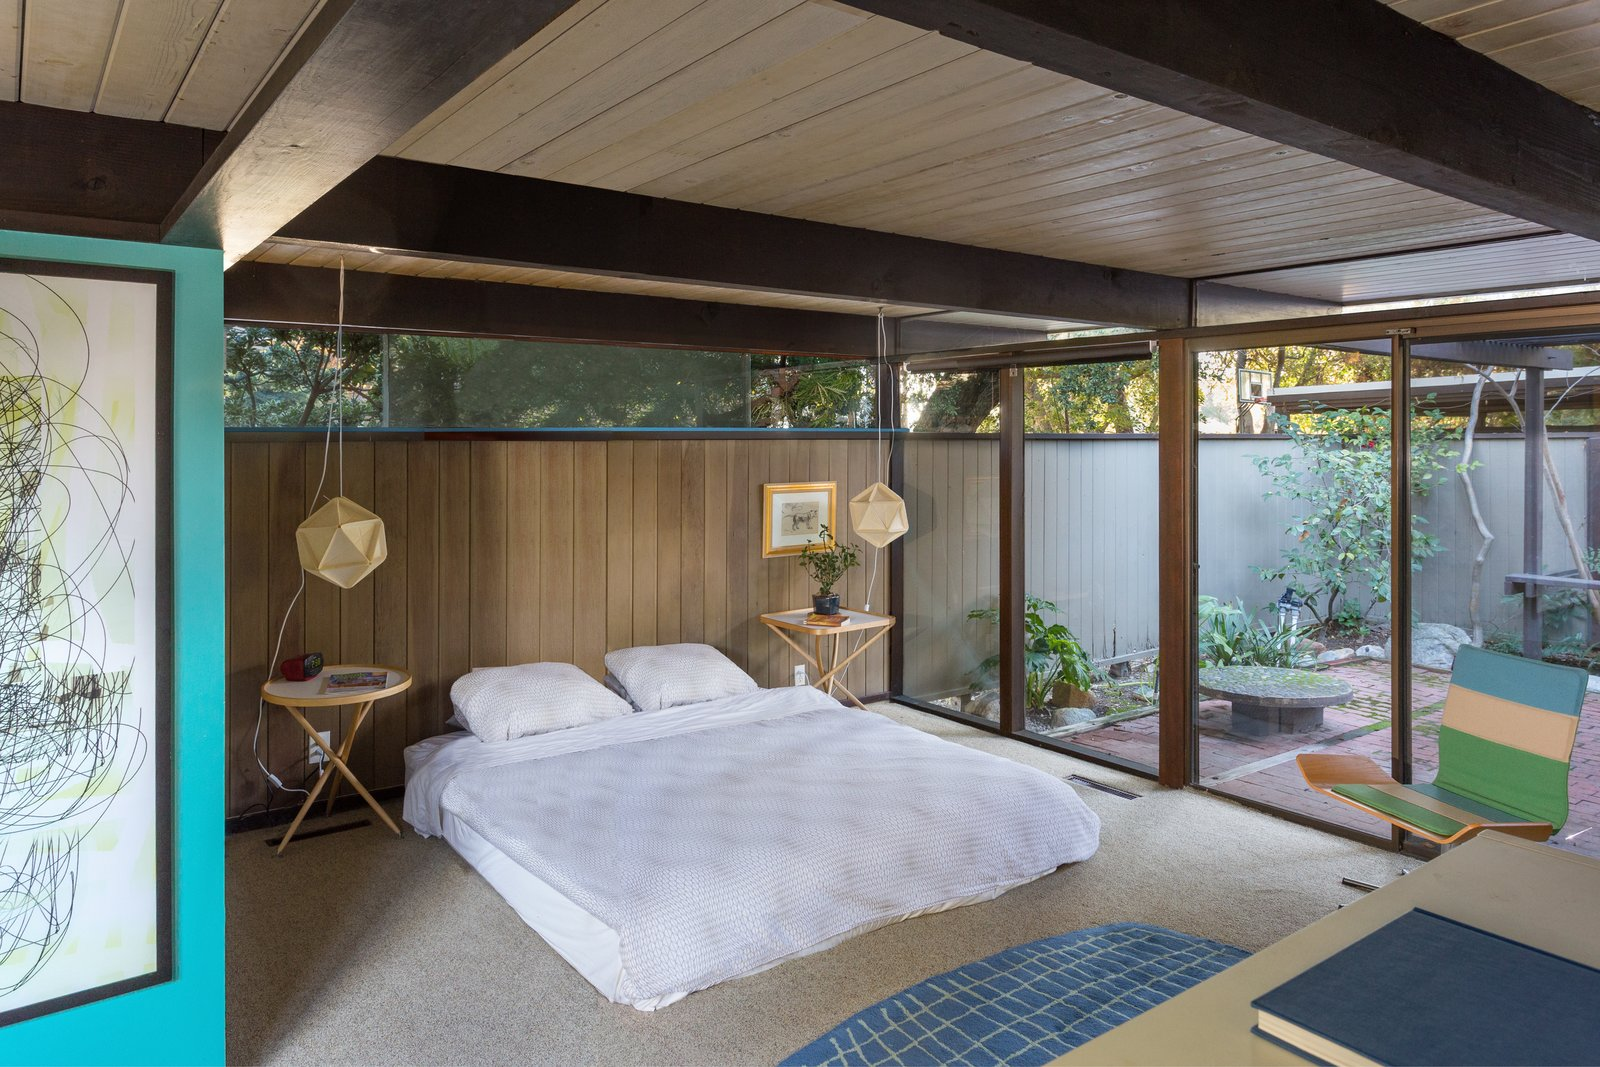 The master bedroom has the benefit of a private courtyard.